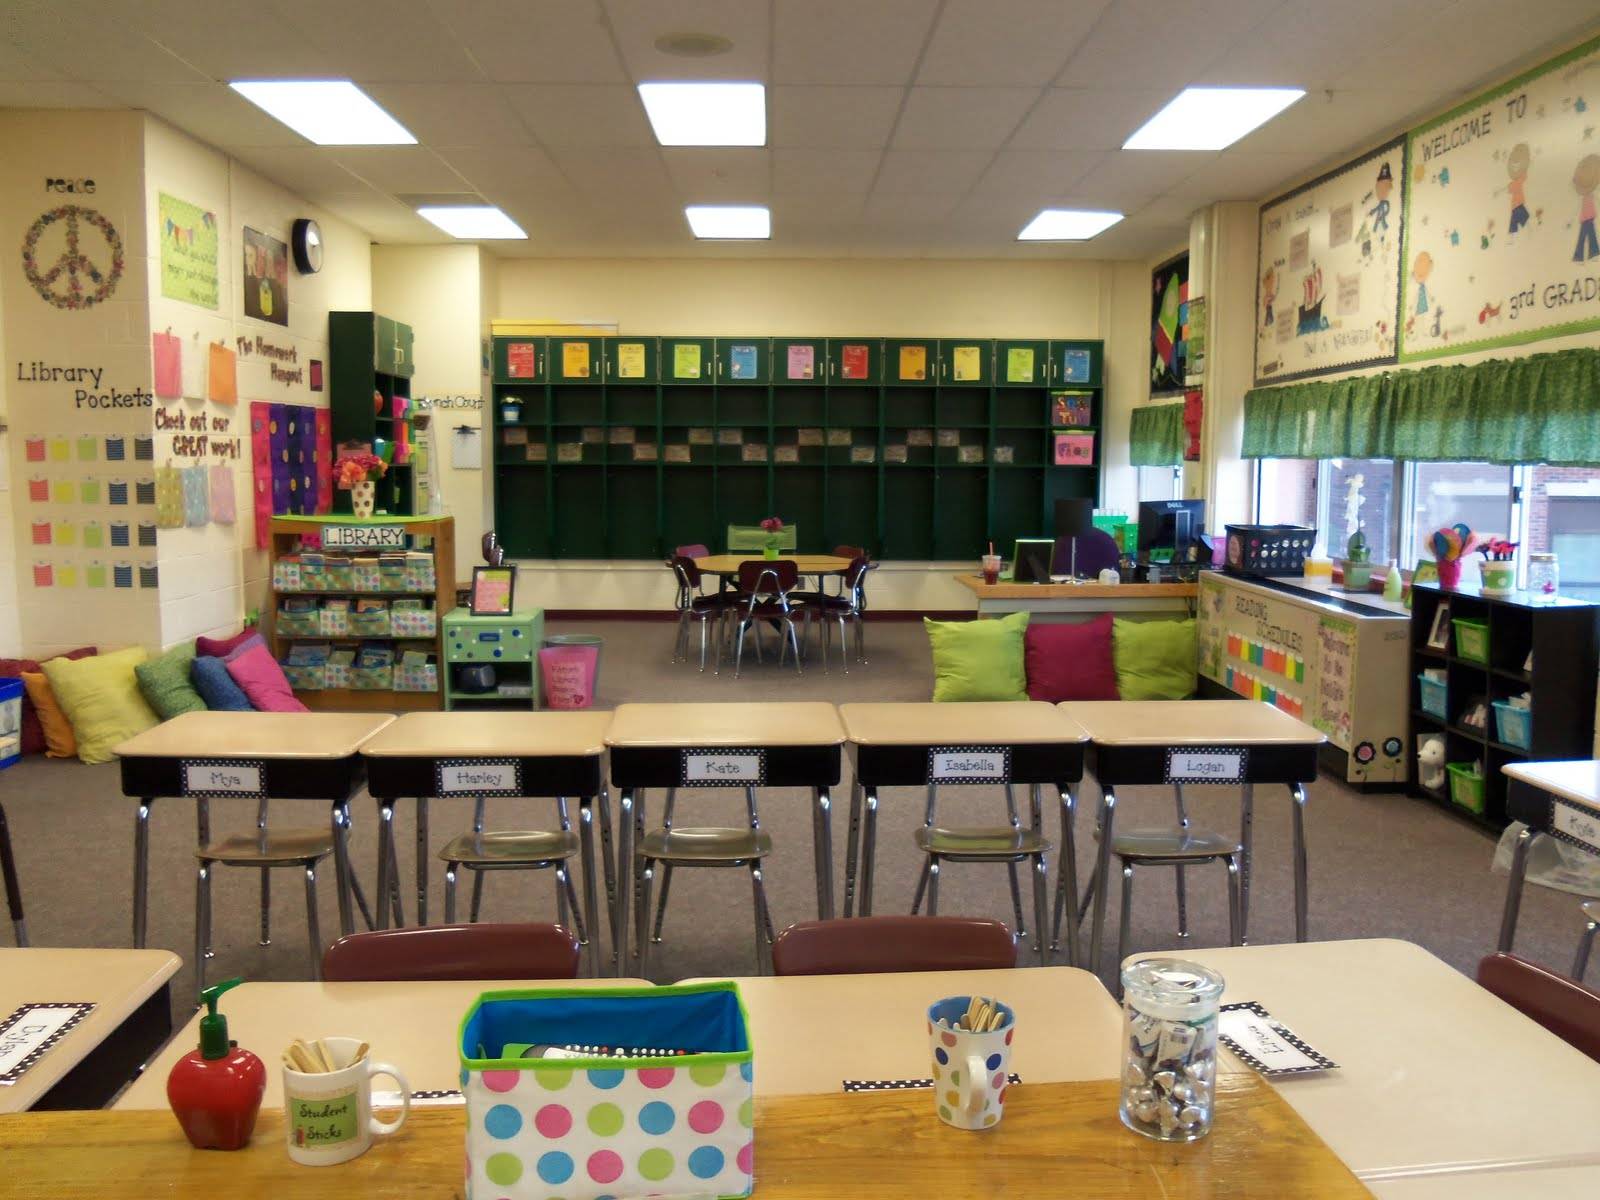 Nice Classroom Design ~ Caffeinated conclusions what i did this summer the